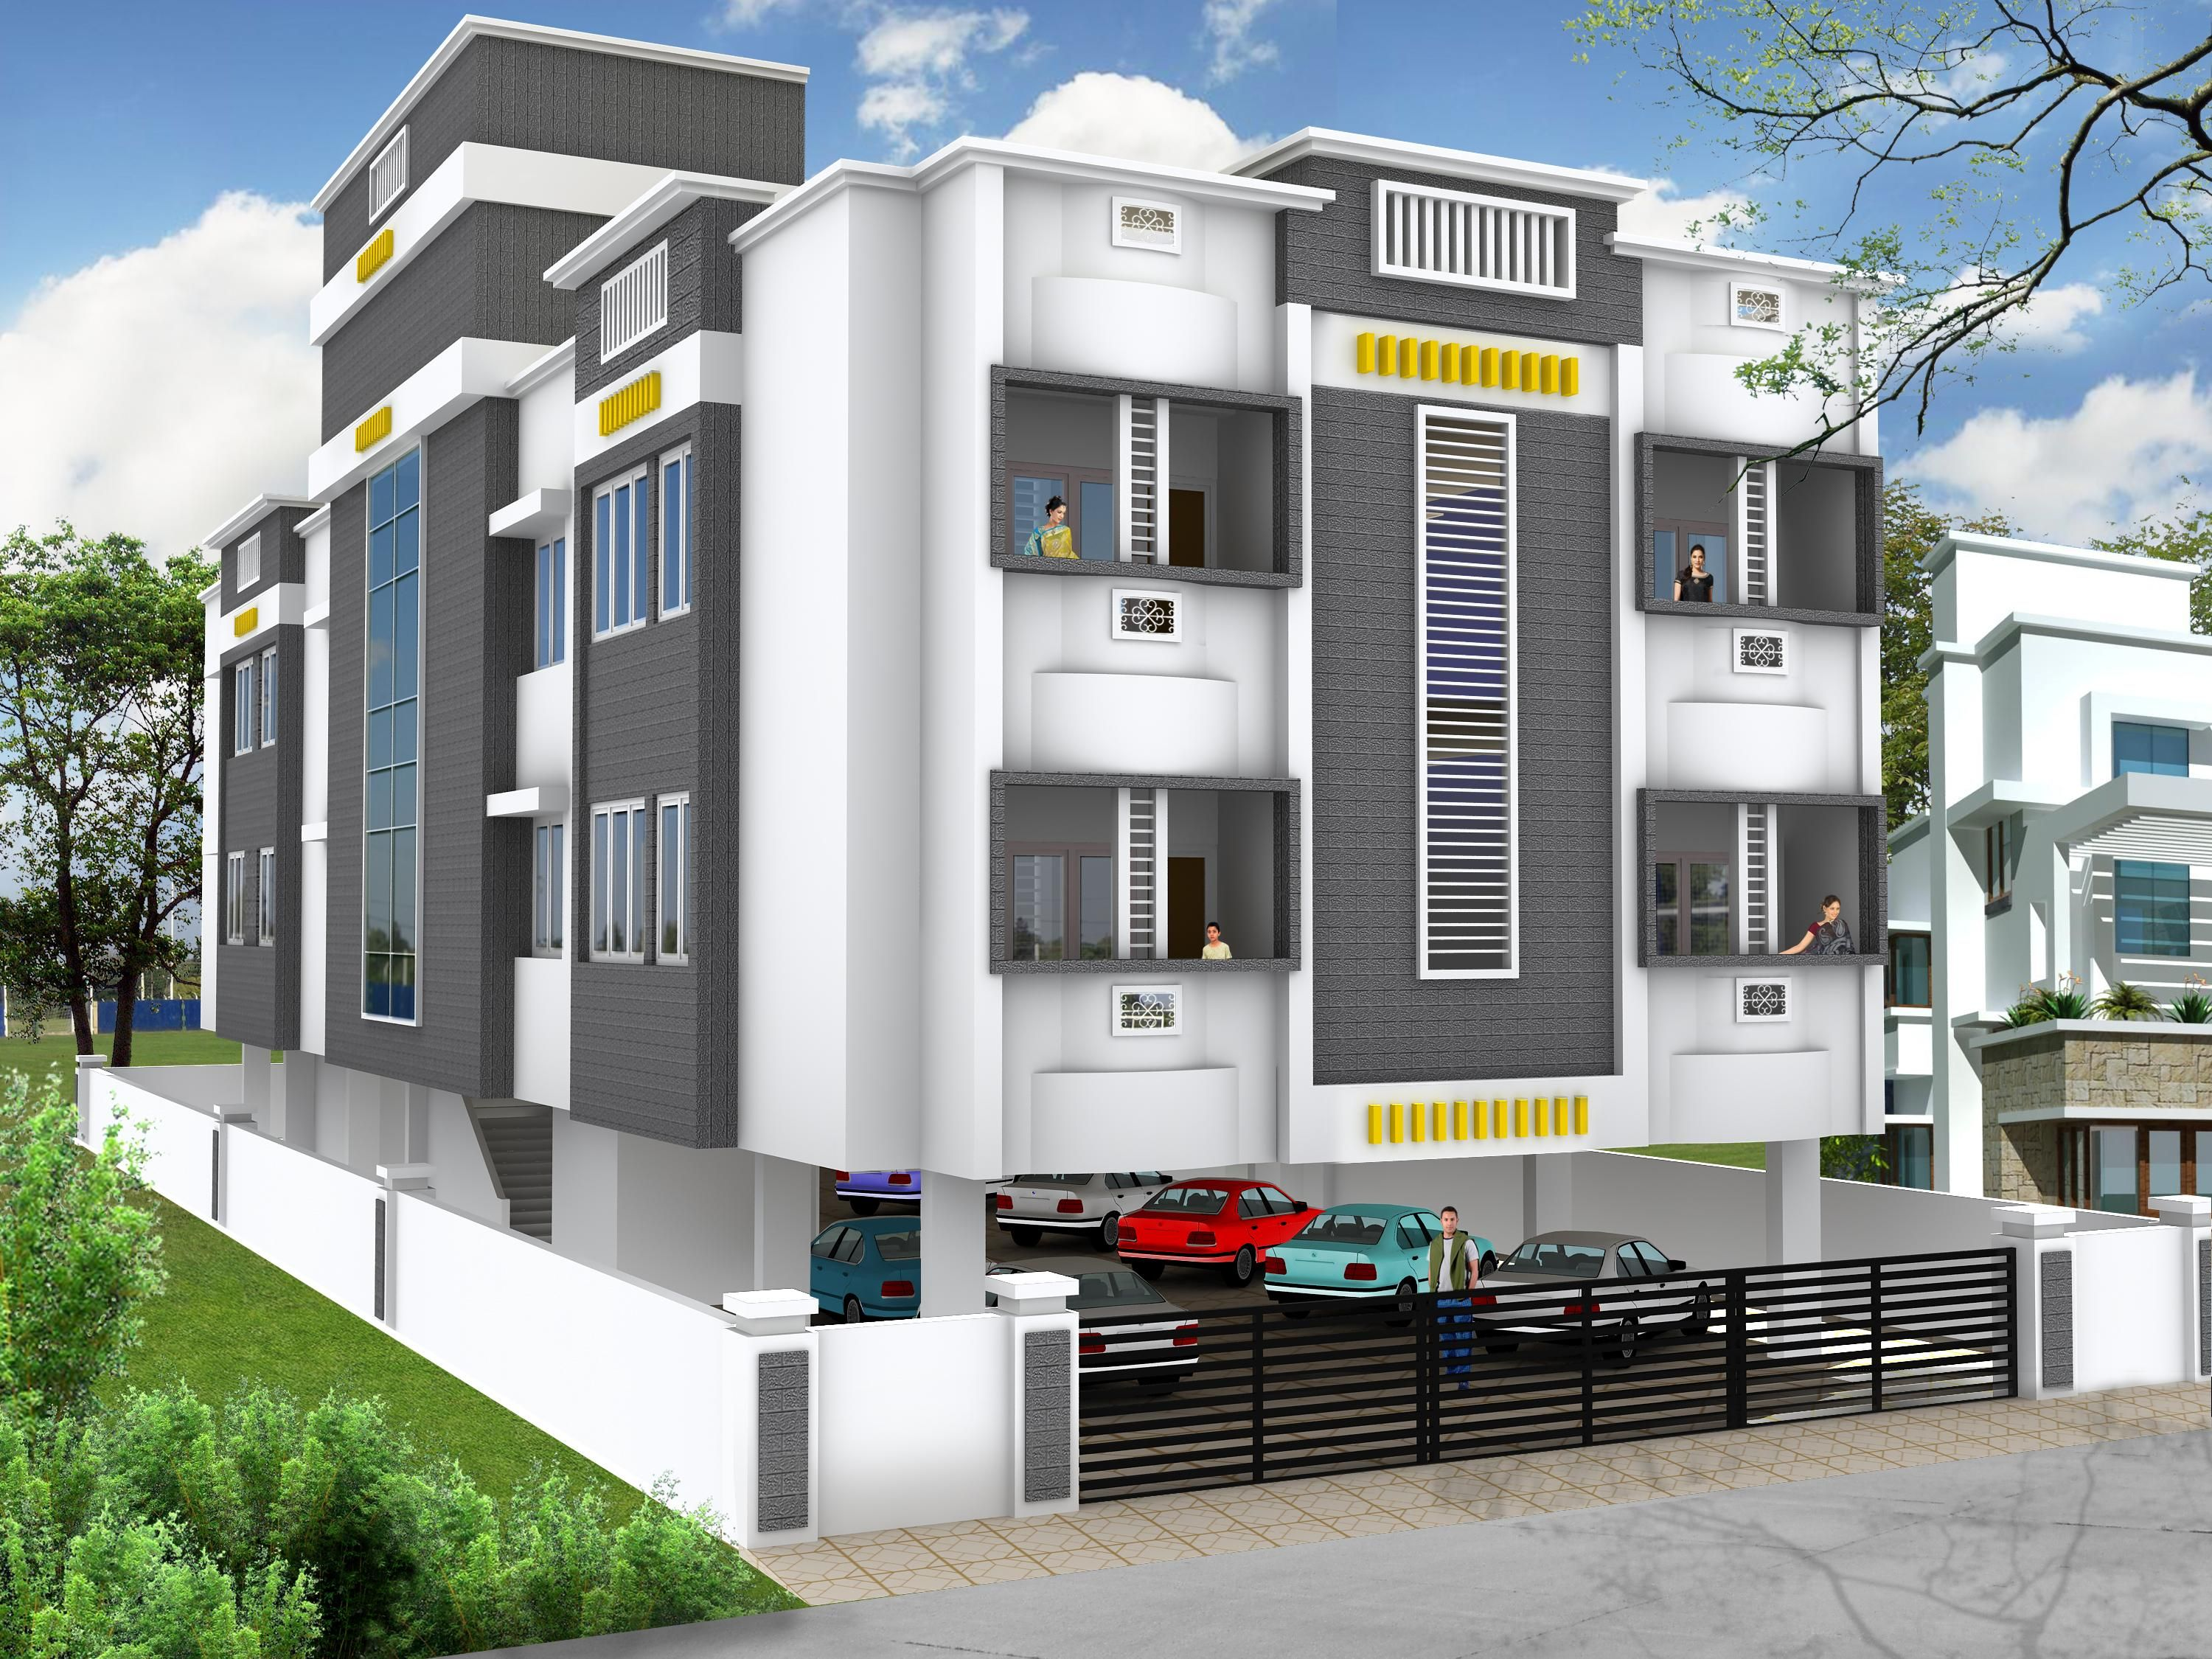 Top Floor Elevation : Elevations of residential buildings in indian photo